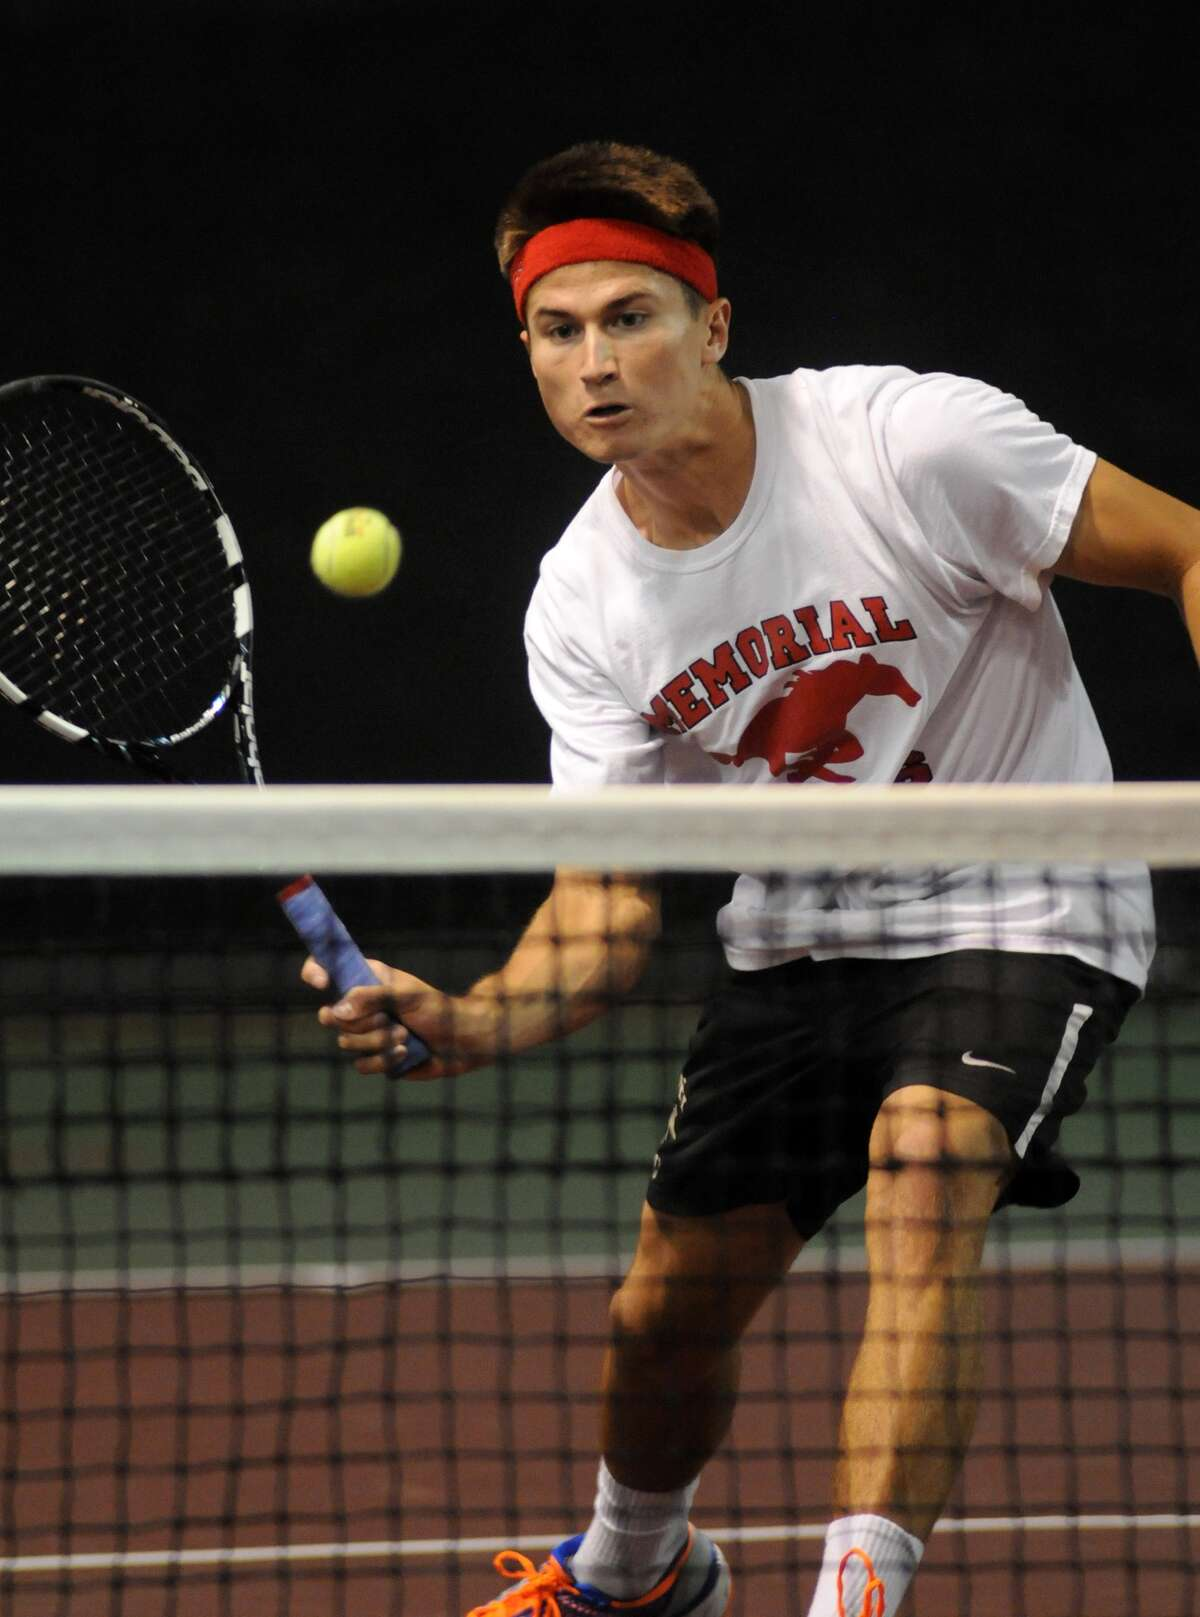 Memorial's Dane Esses, above, and Tadhg Collins, below, will compete for the Mustangs at the UIL Class 6A Tennis Tournament at Texas A&M May 12 and 13.